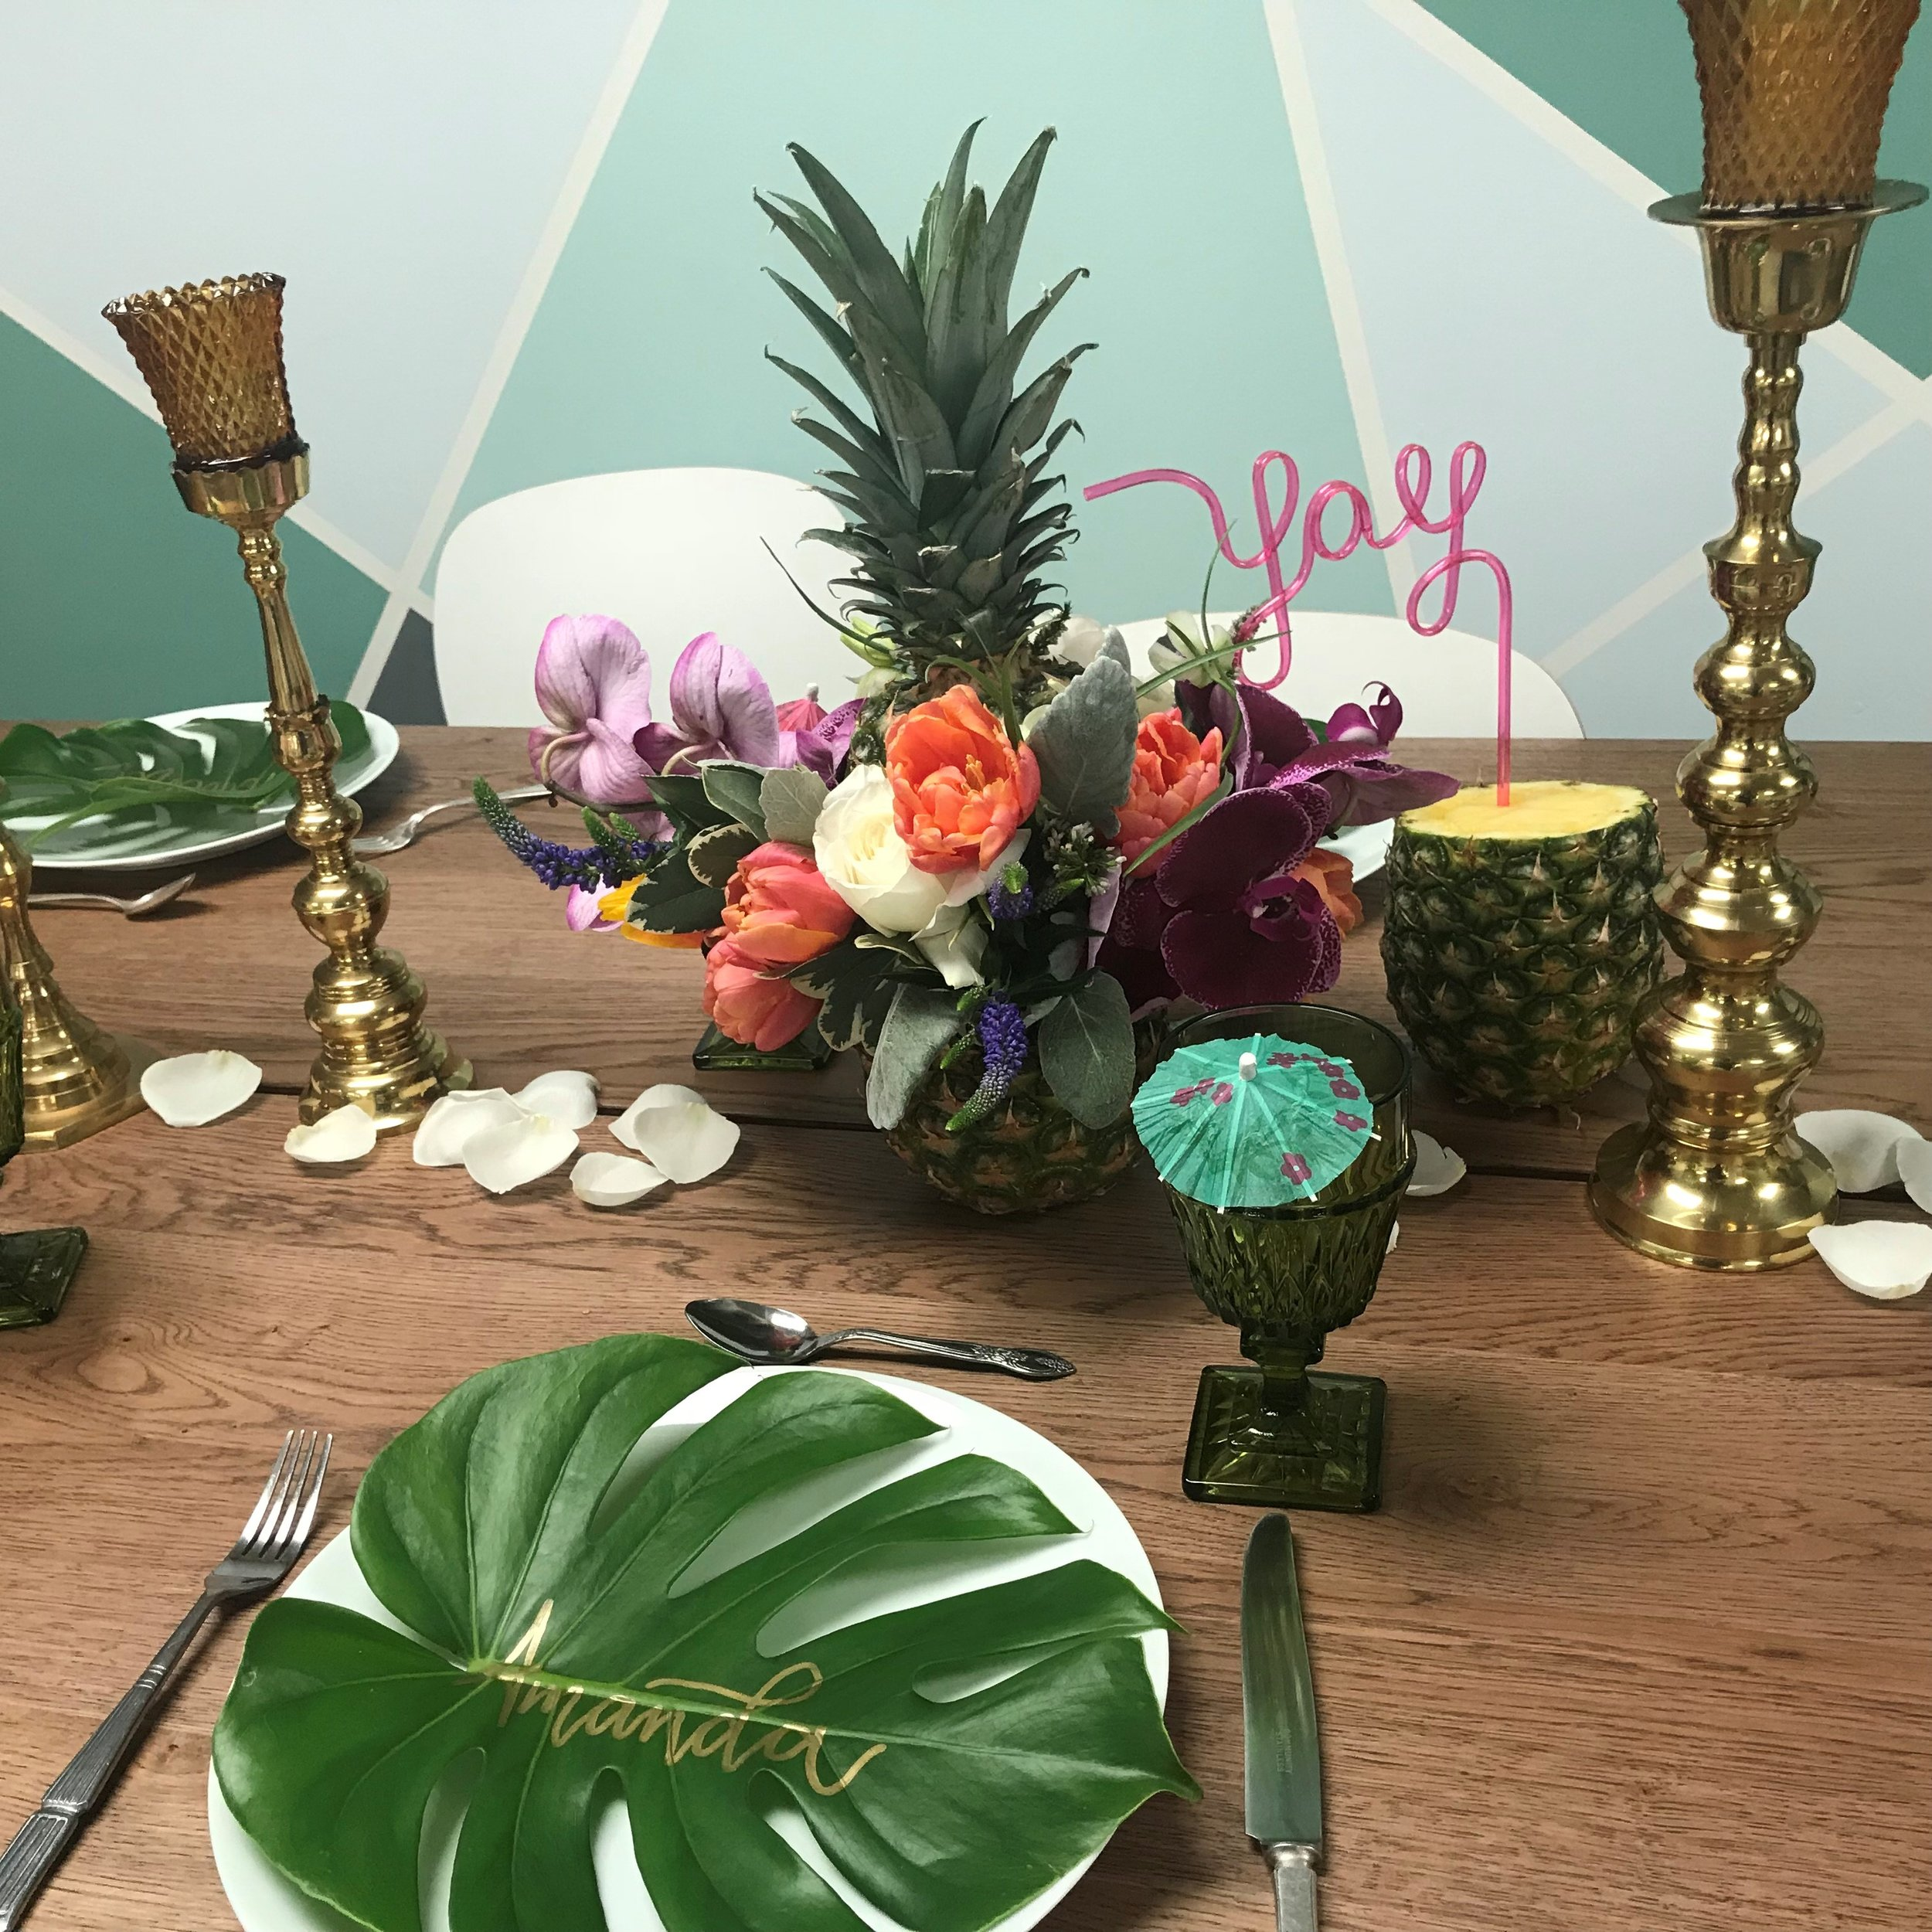 Beach Themed Bridal Shower Venue Ideas! Madison WI - Bring your own food & alcohol - No Restrictions!